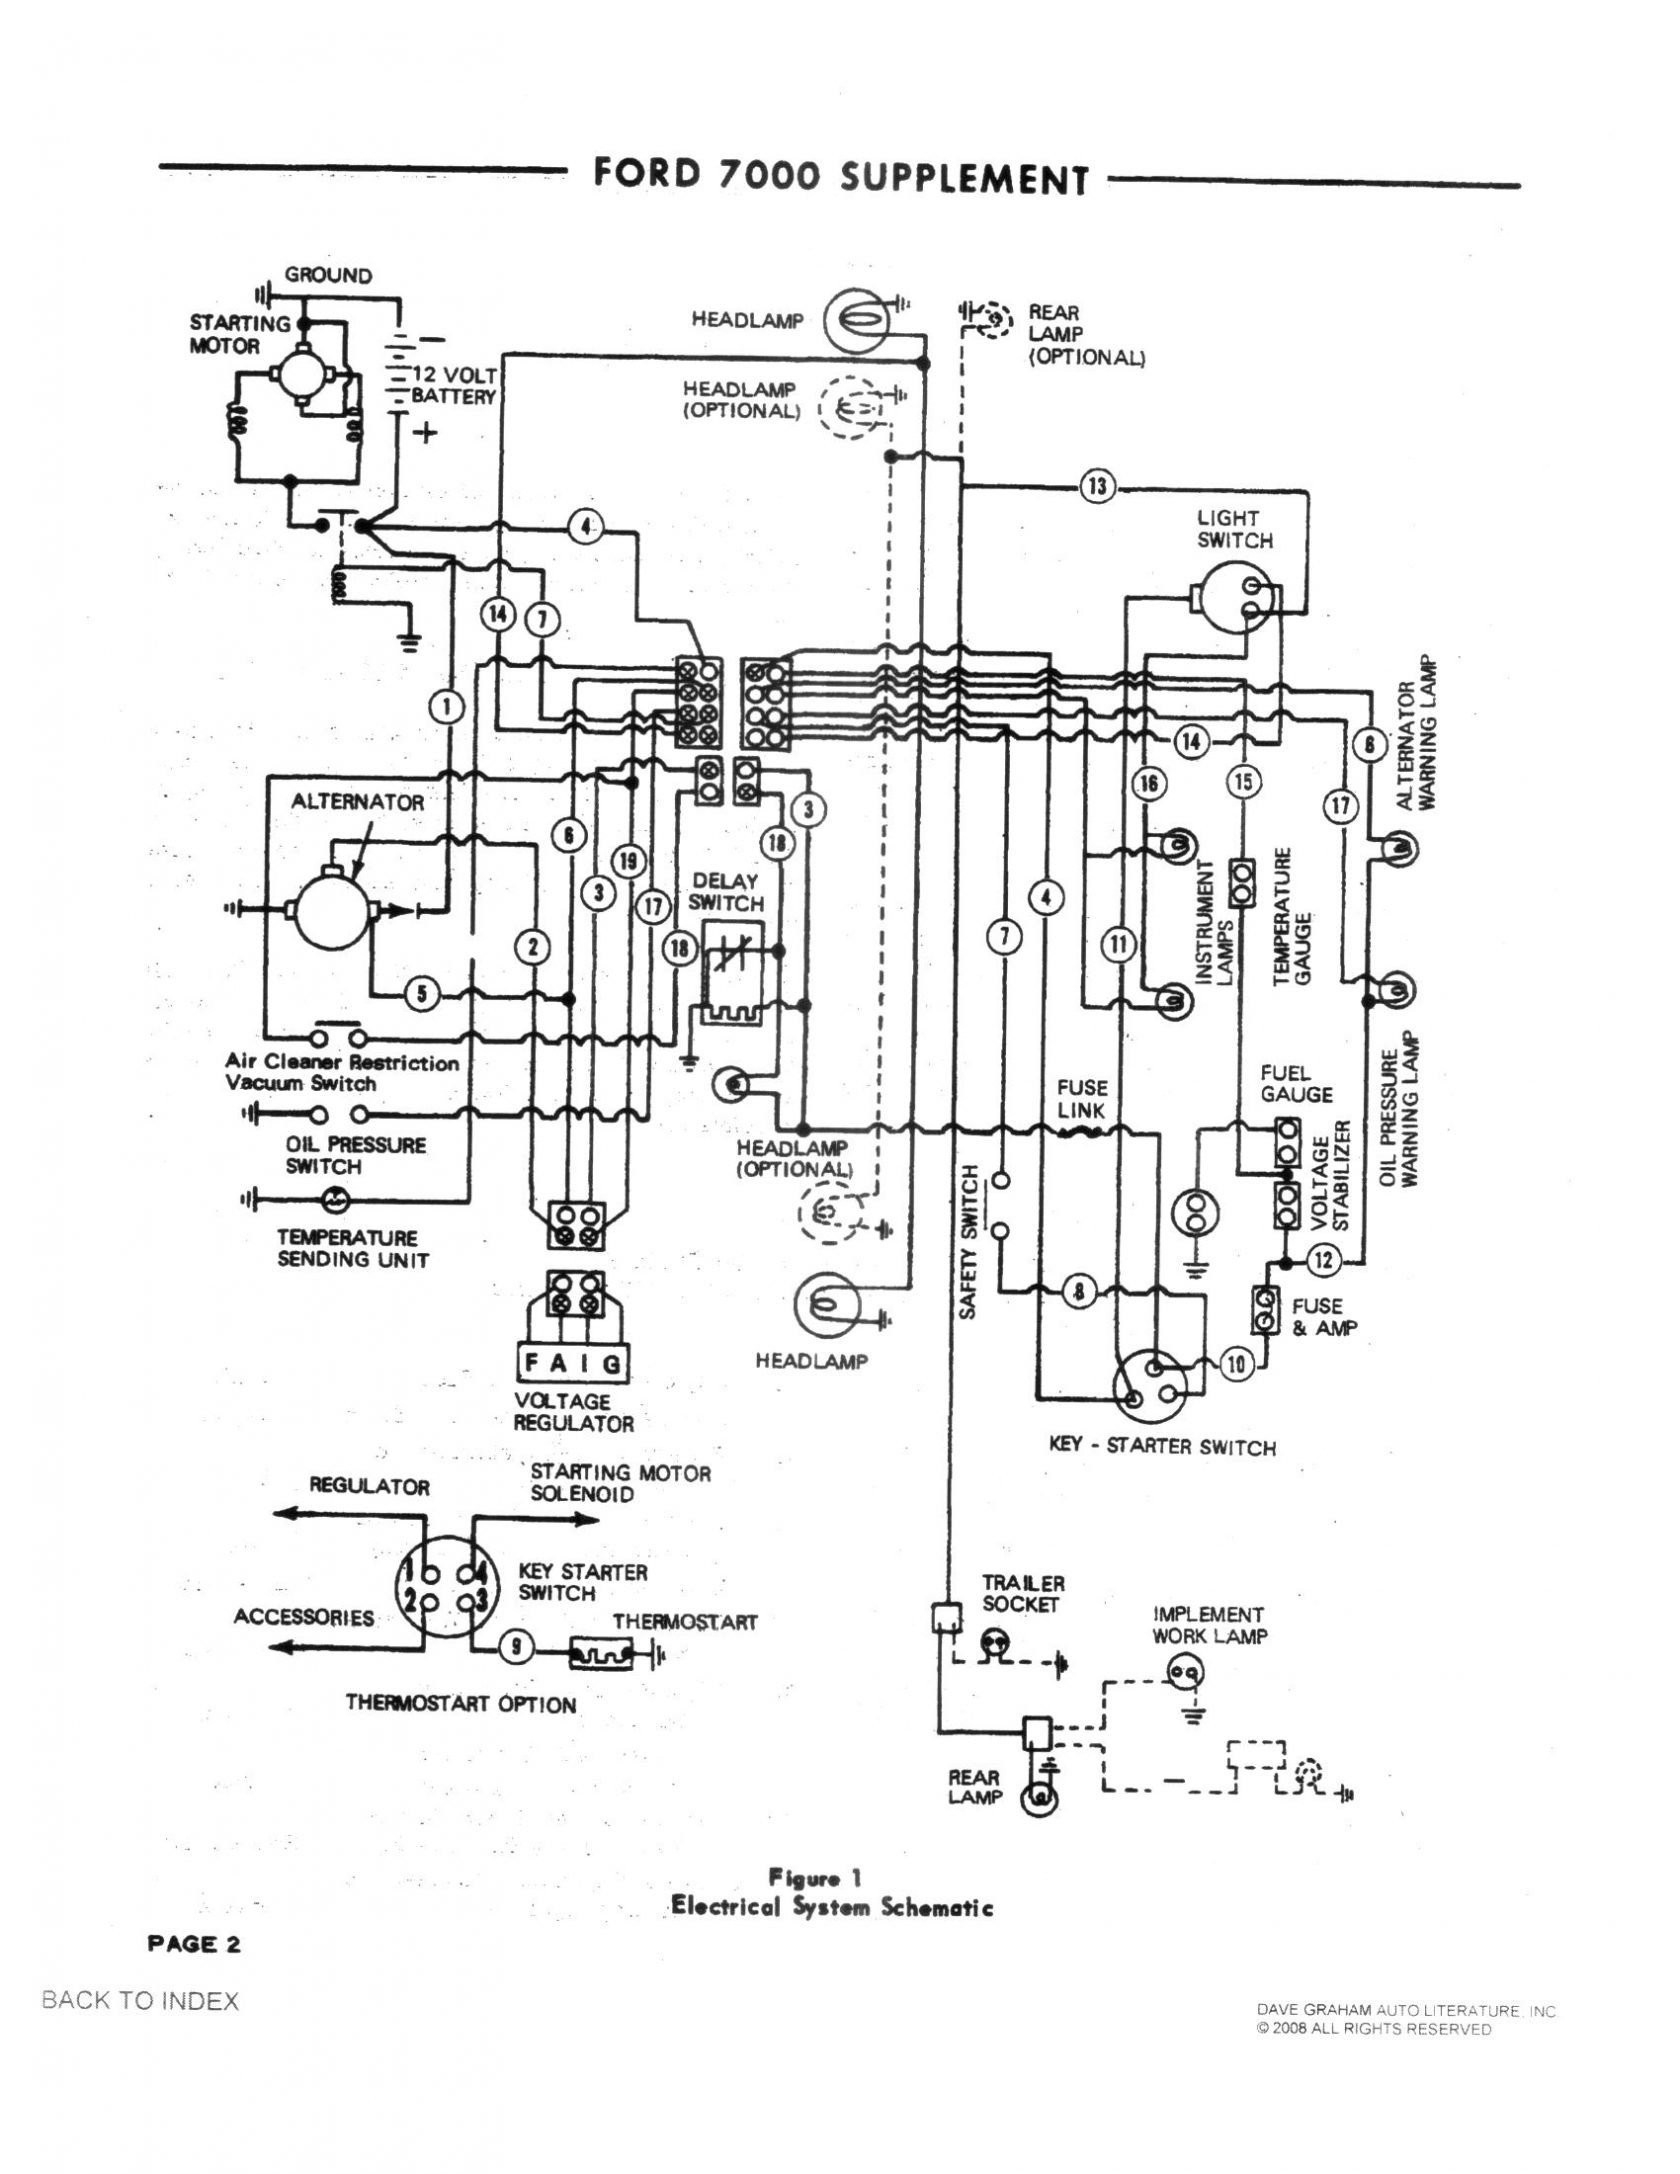 Lawn Mower 5 Prong Ignition Switch Wiring Diagram from 2020cadillac.com